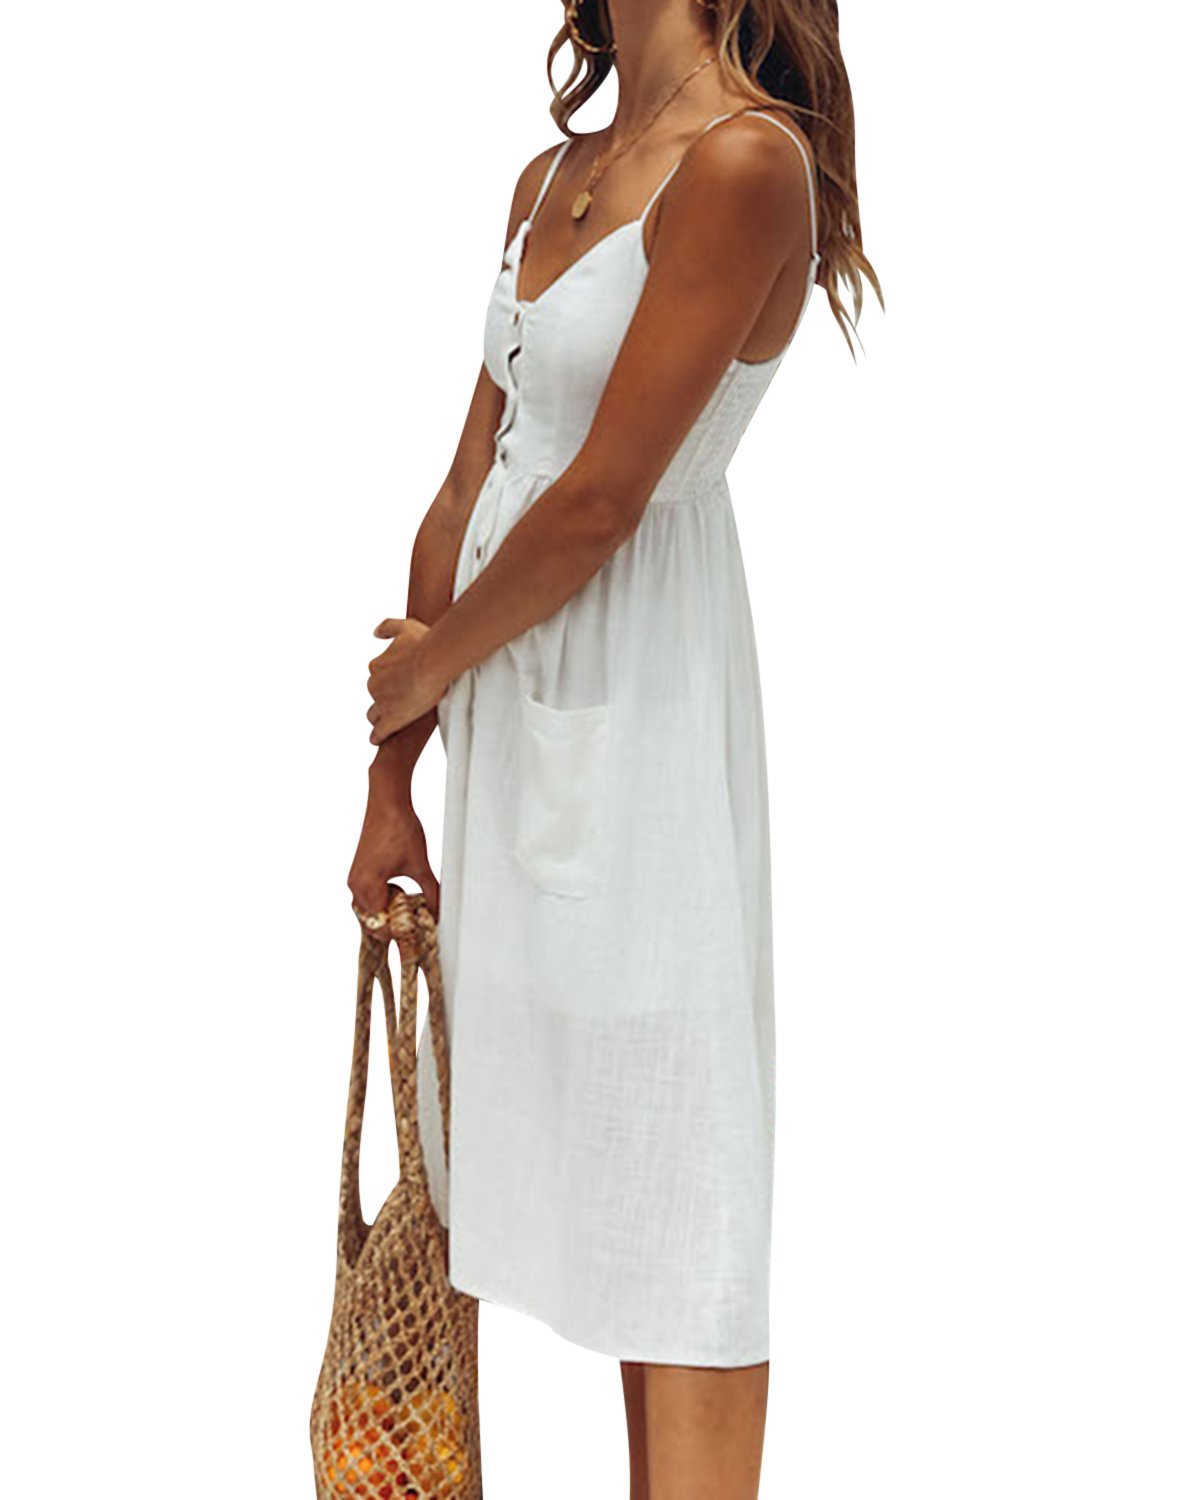 Jacansi Women Bohemian Sleeveless Backless Knee-Length Button up Midi Dress with Pocket White L by Jacansi (Image #3)